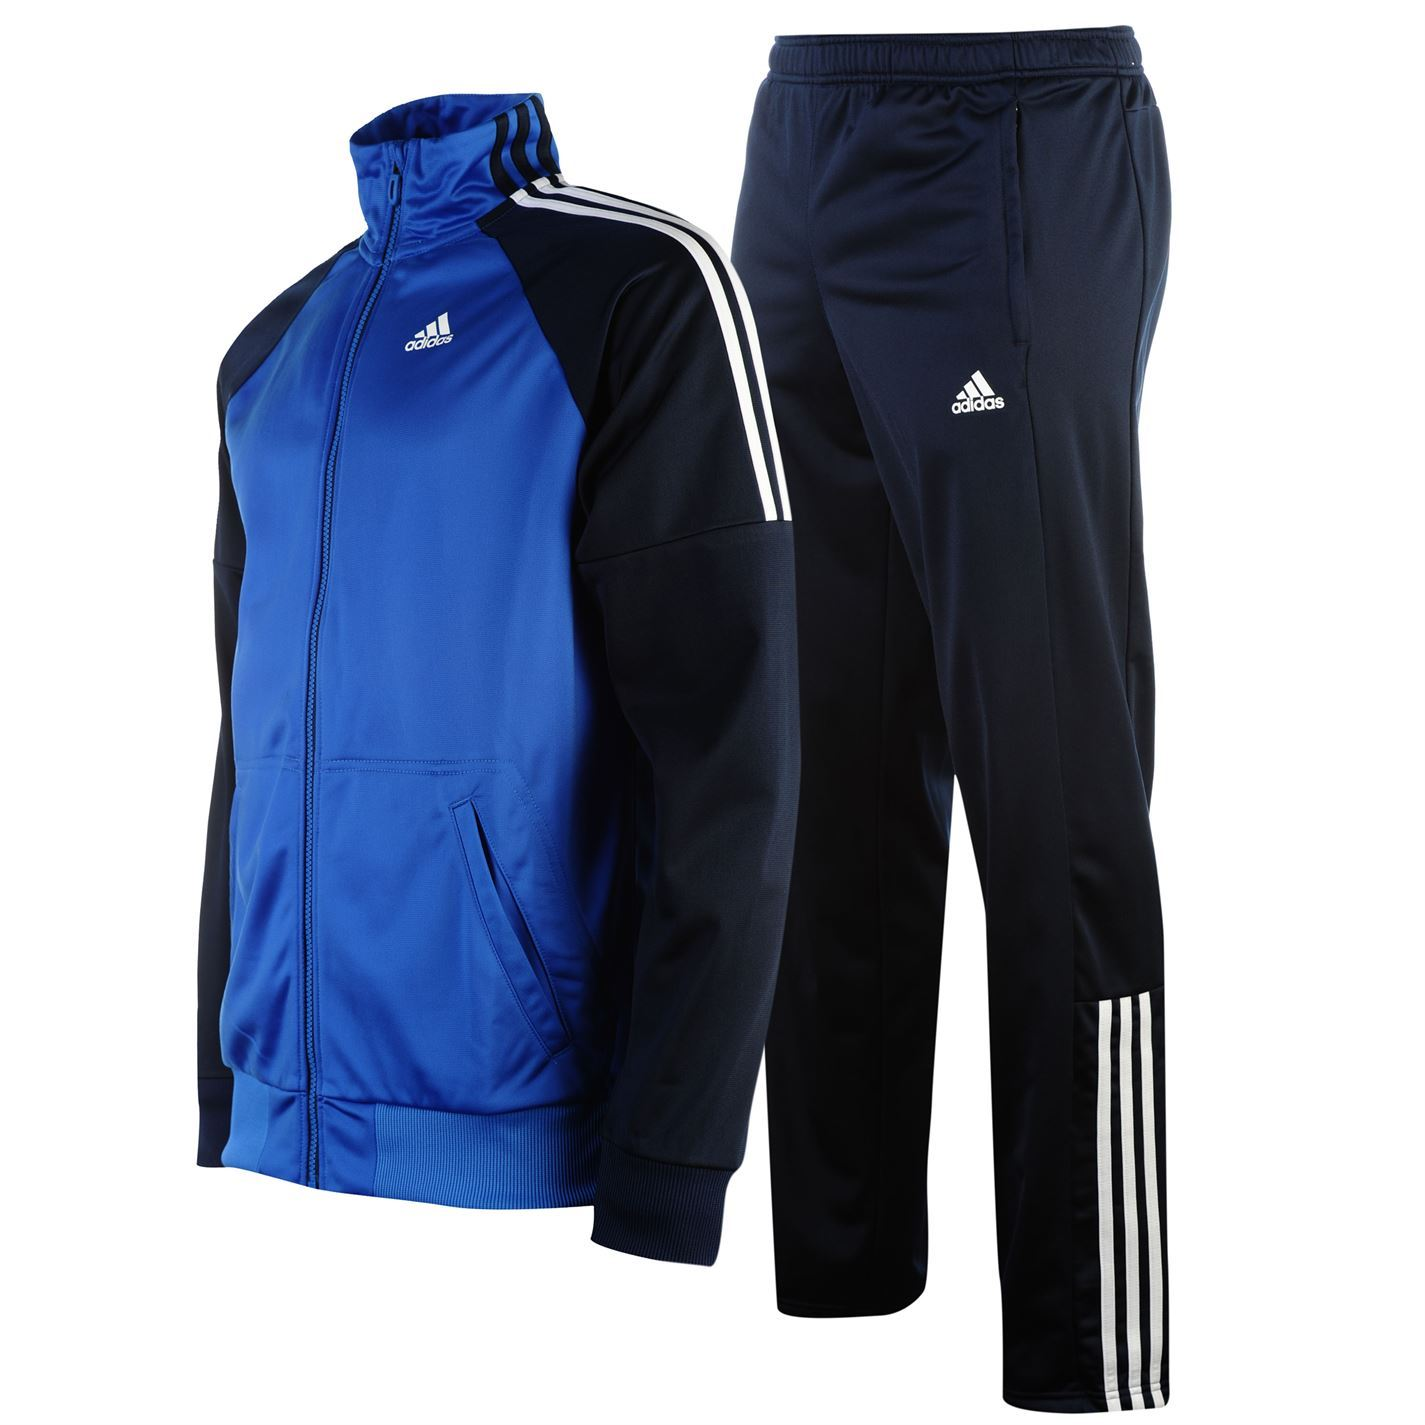 What Shoes To Wear With Adidas Tracksuit